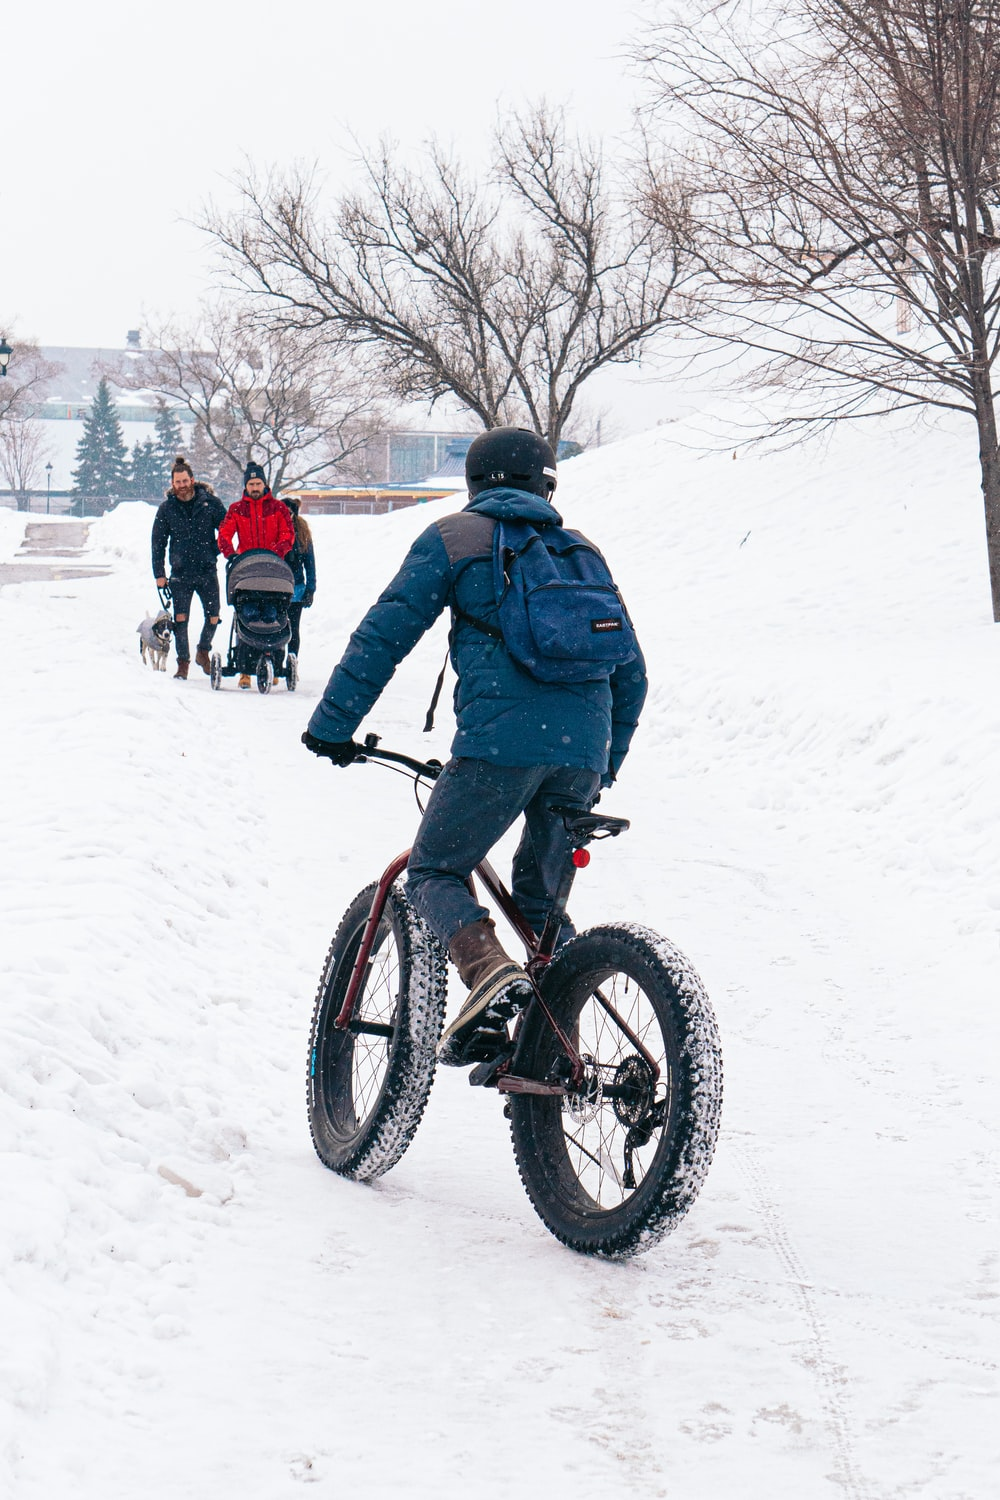 man in blue jacket riding on black bmx bike on snow covered ground during daytime